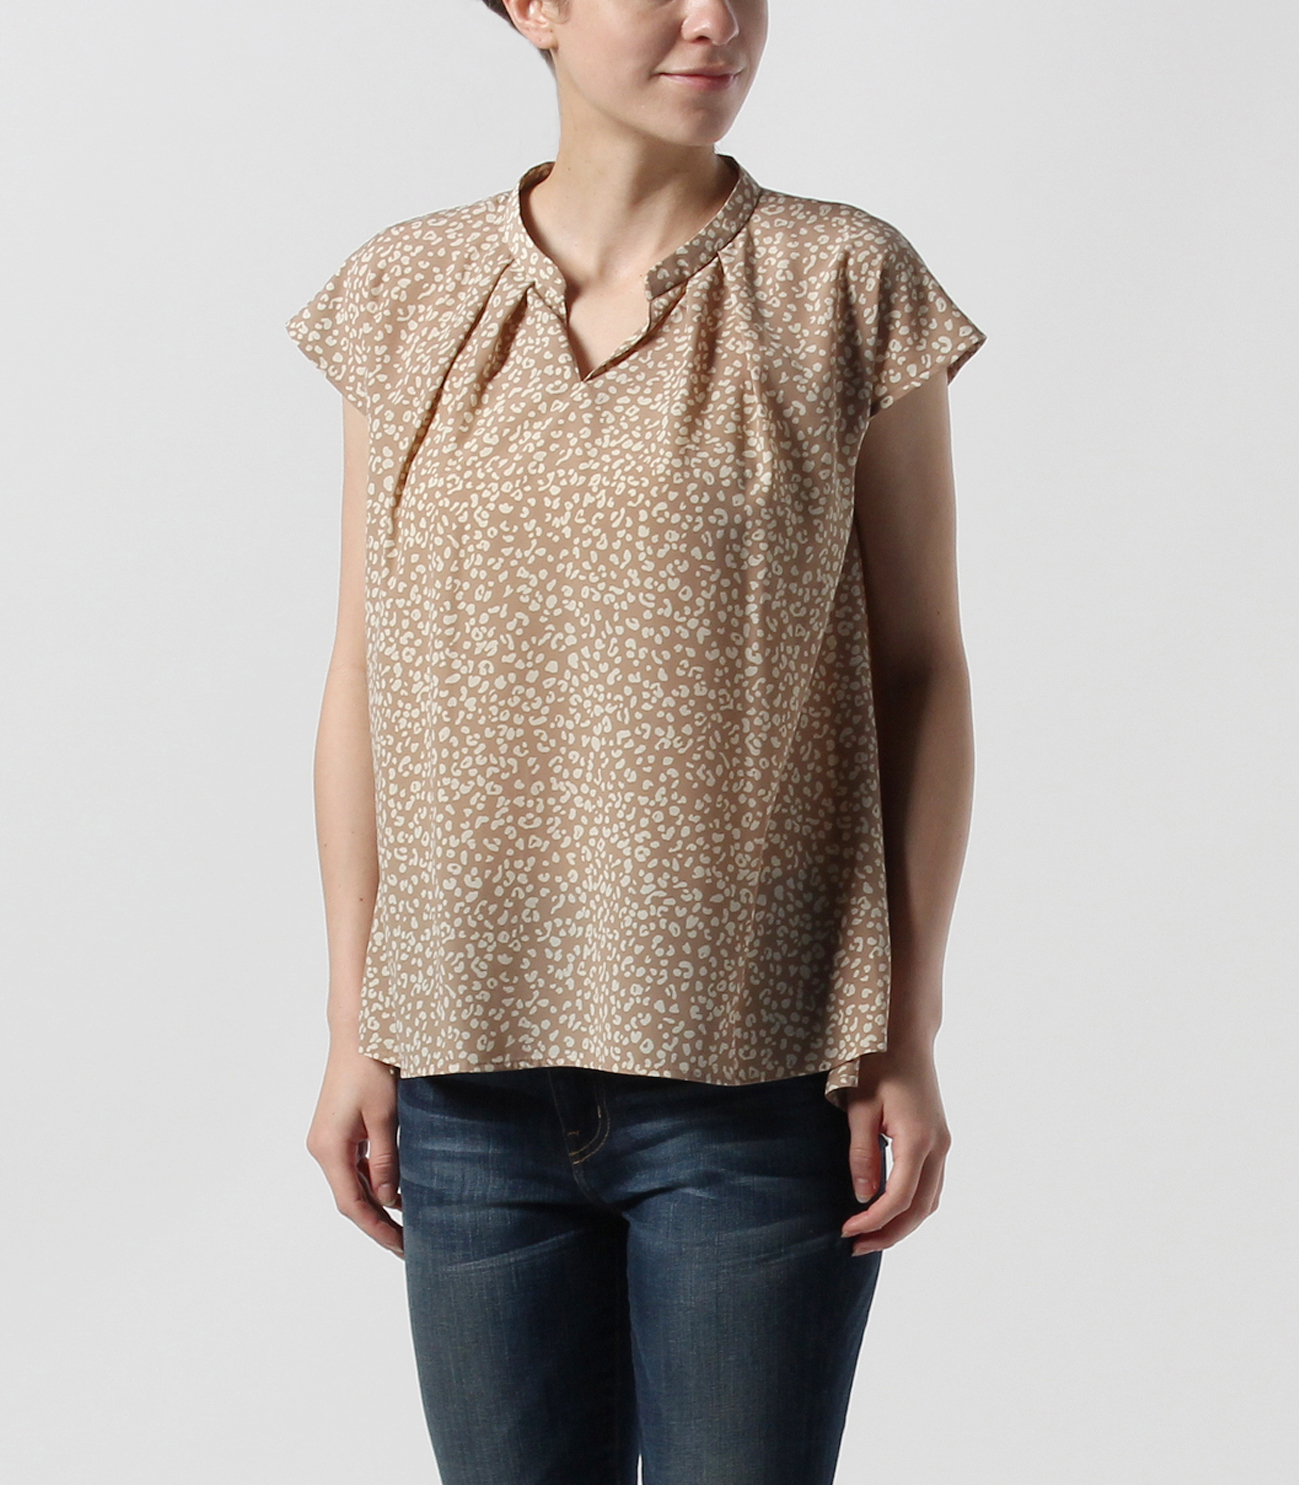 small leopard print french slv t 詳細画像 beige 6